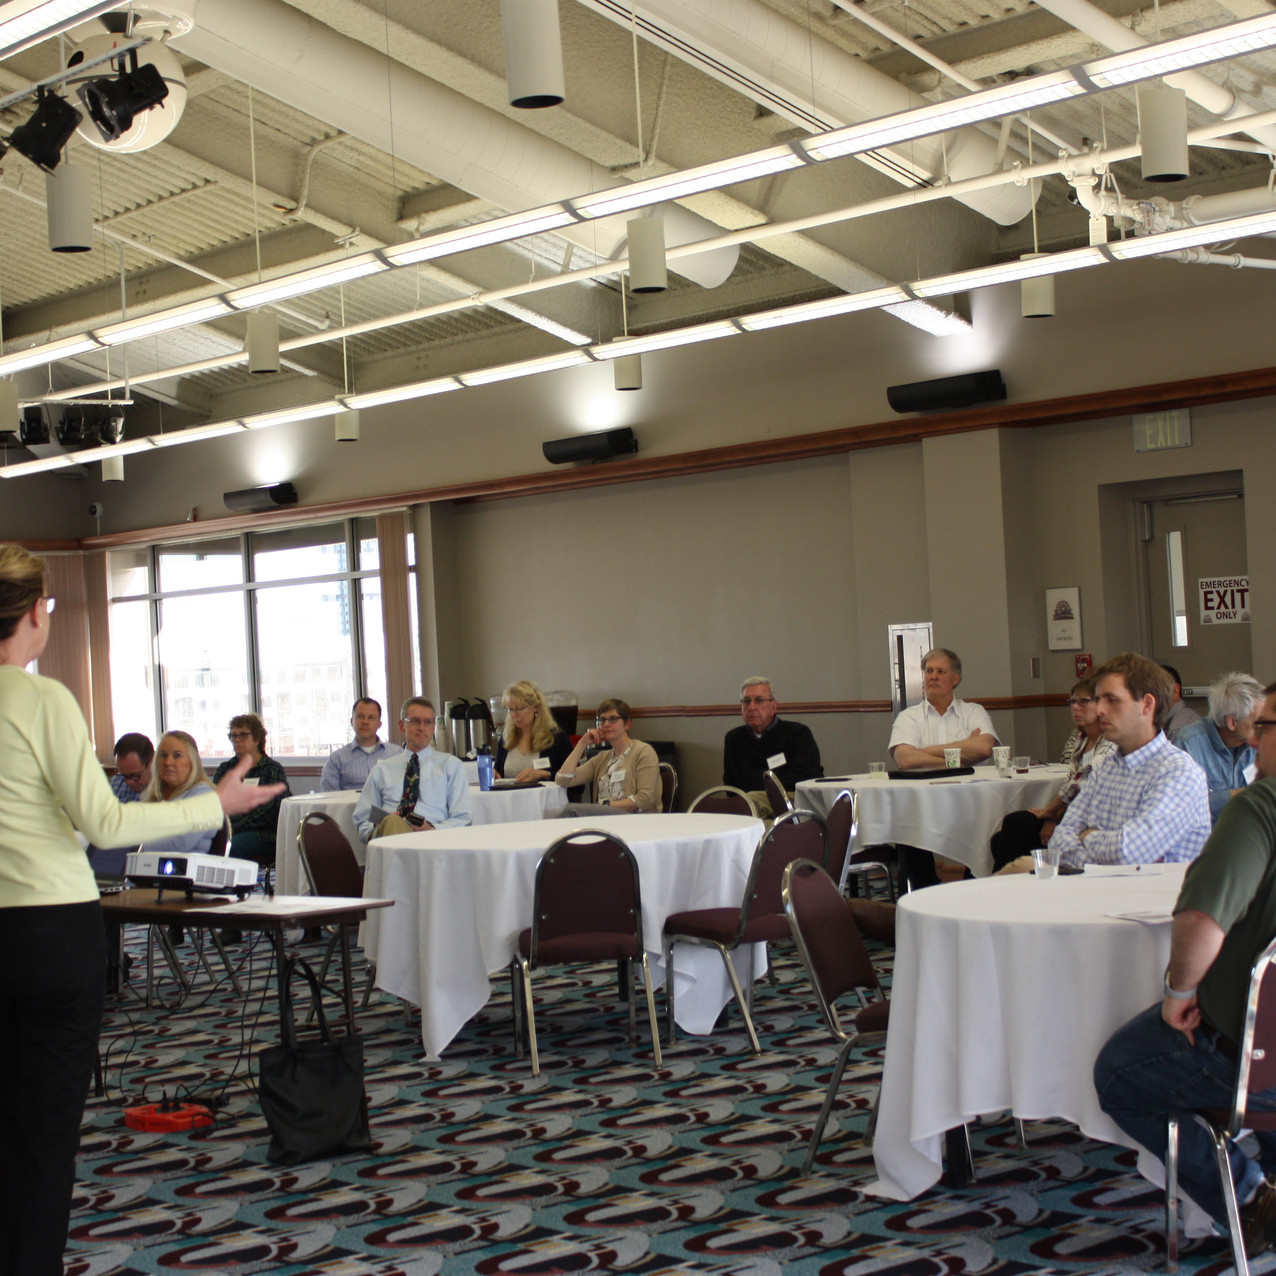 David Silverman, AICP and Cindy Winland, FAICP present at the Champaign County RPC Plan Commissioner Training 04-12-18 (photo by Kathleen Oldrey, CCRPC)